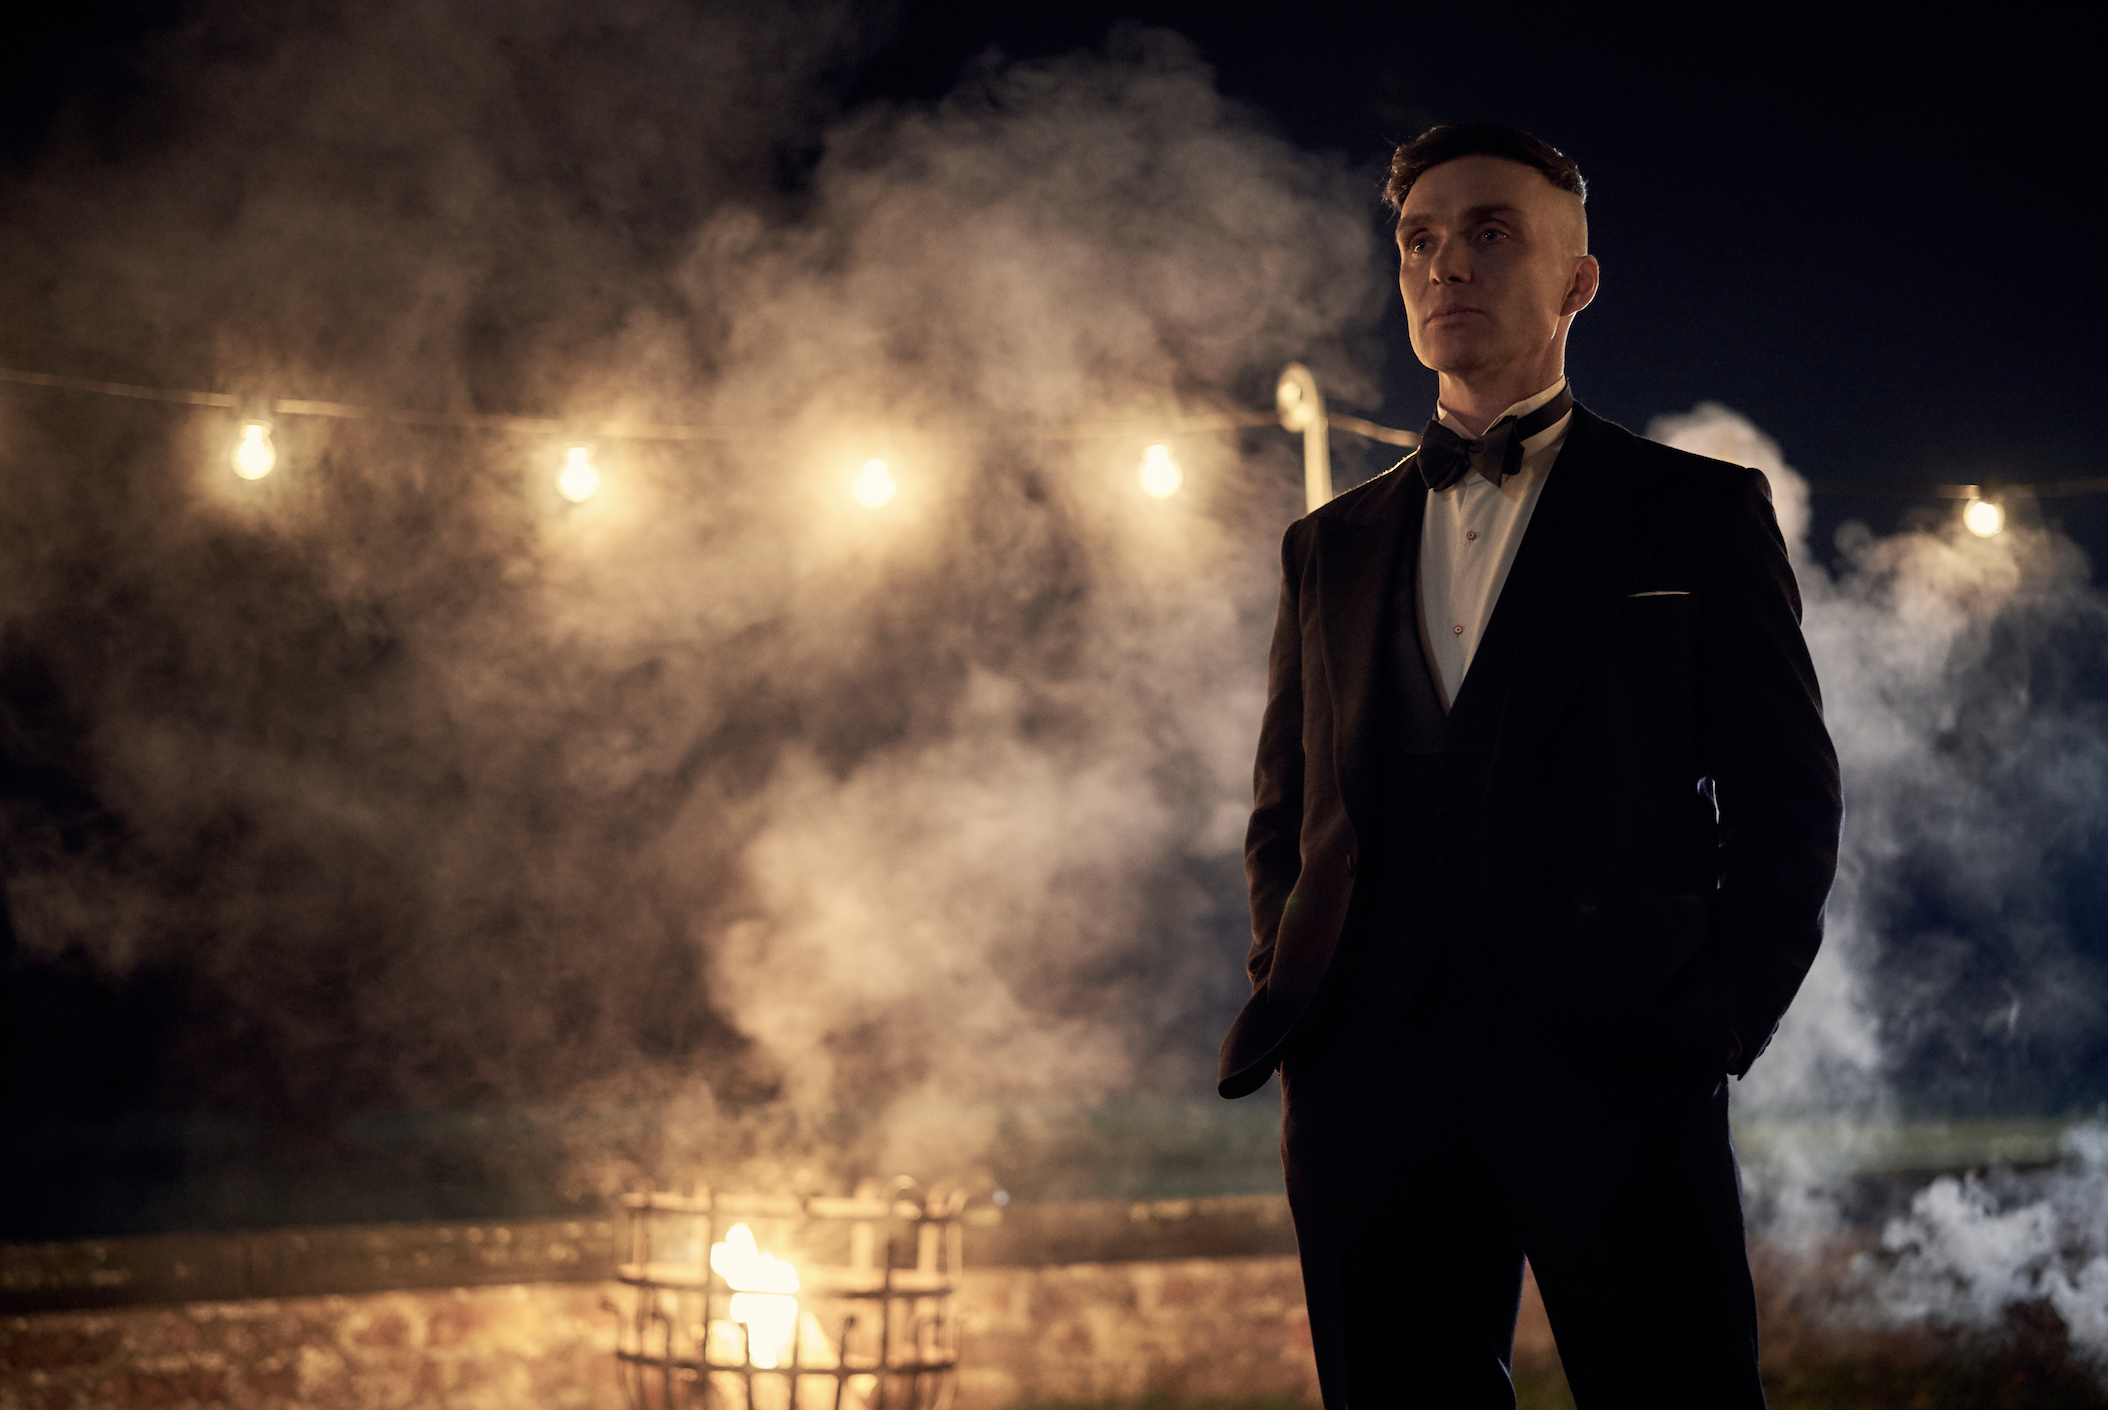 How Peaky Blinders season 5 finale sets up season 6 - who betrayed Tommy Shelby?